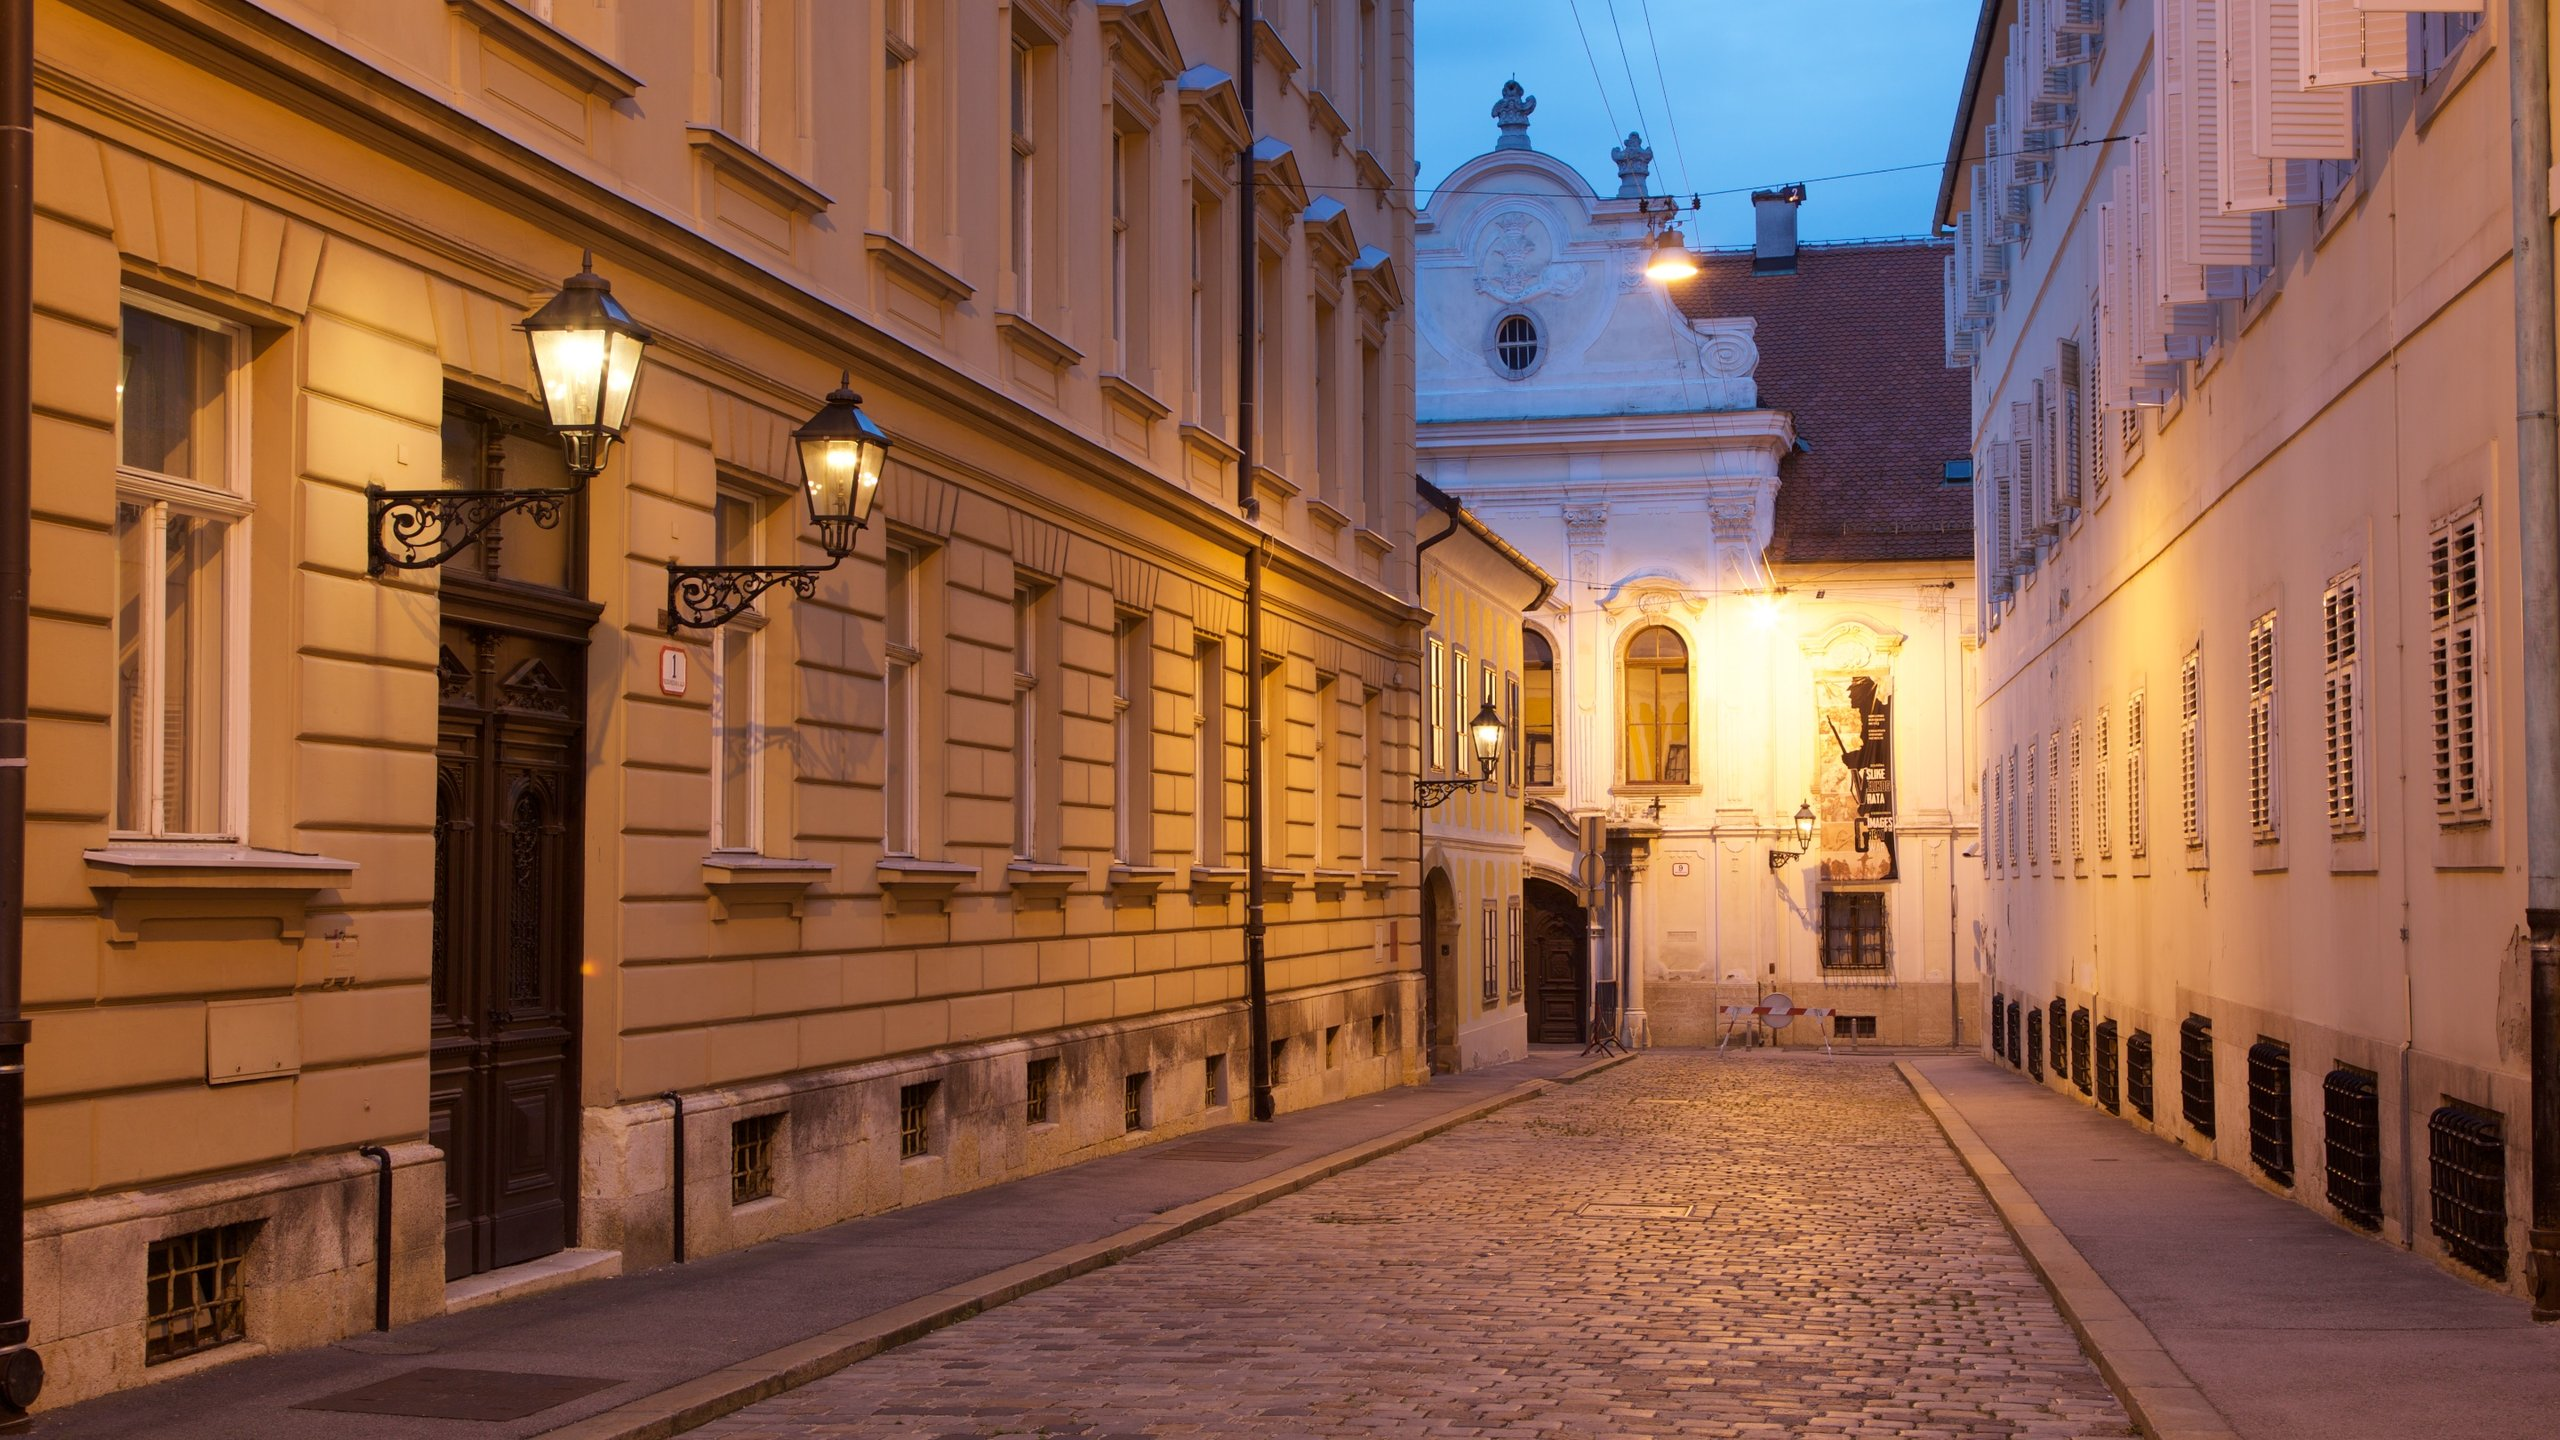 Visit Upper Town Best Of Upper Town Tourism Expedia Travel Guide